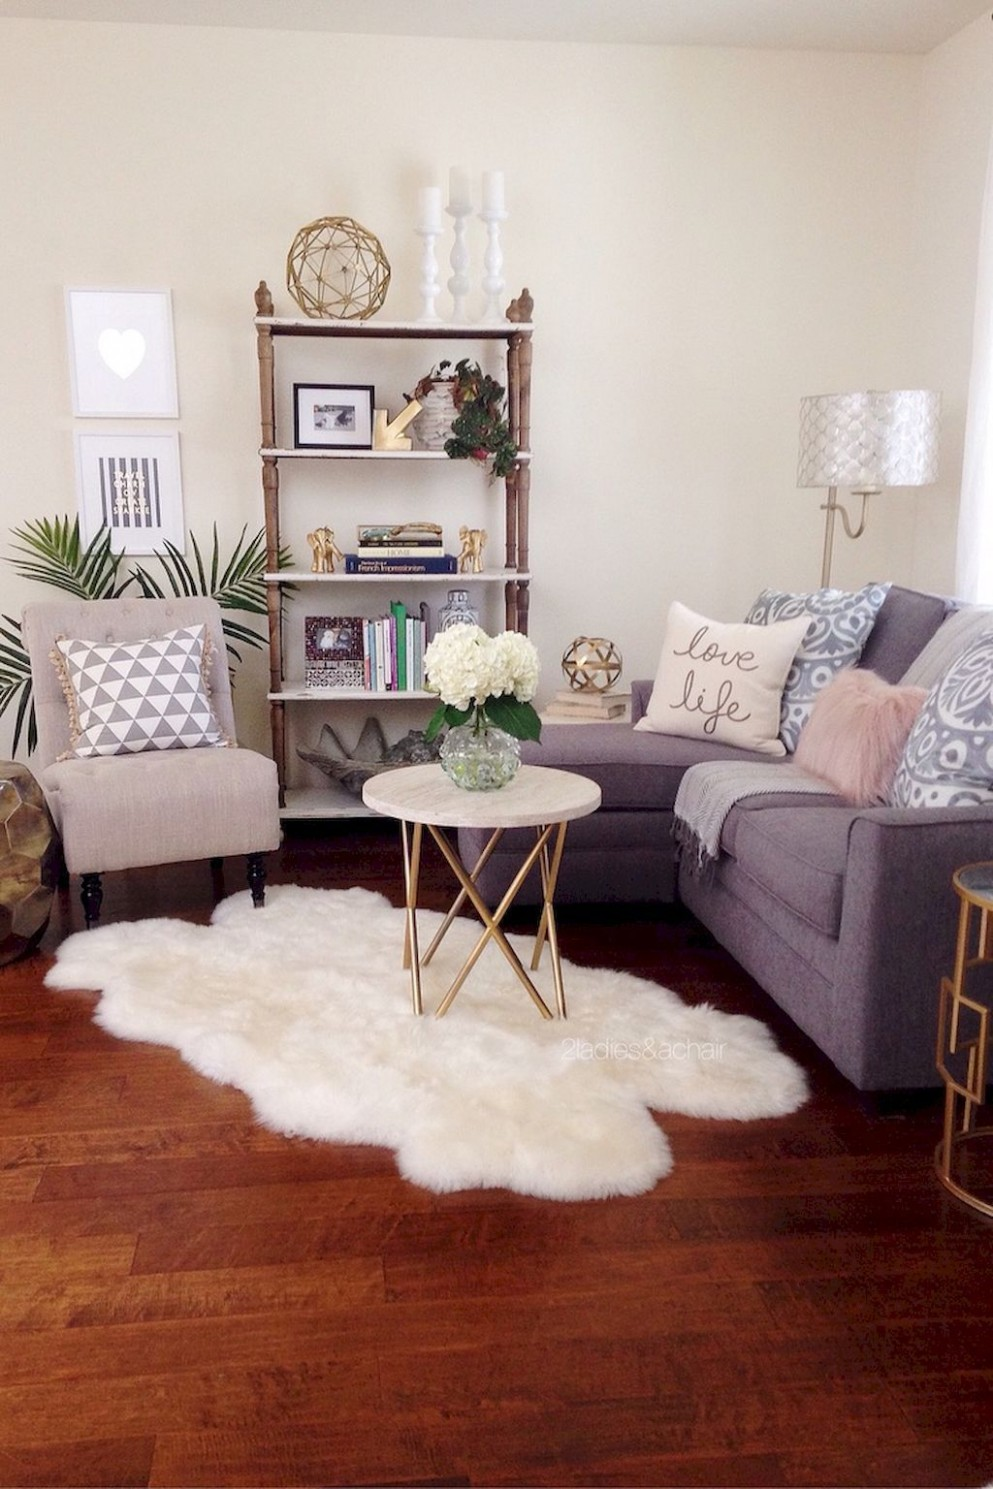 Cozy living room ideas for small apartments (8)  Small living  - Apartment Living Room Ideas On A Budget